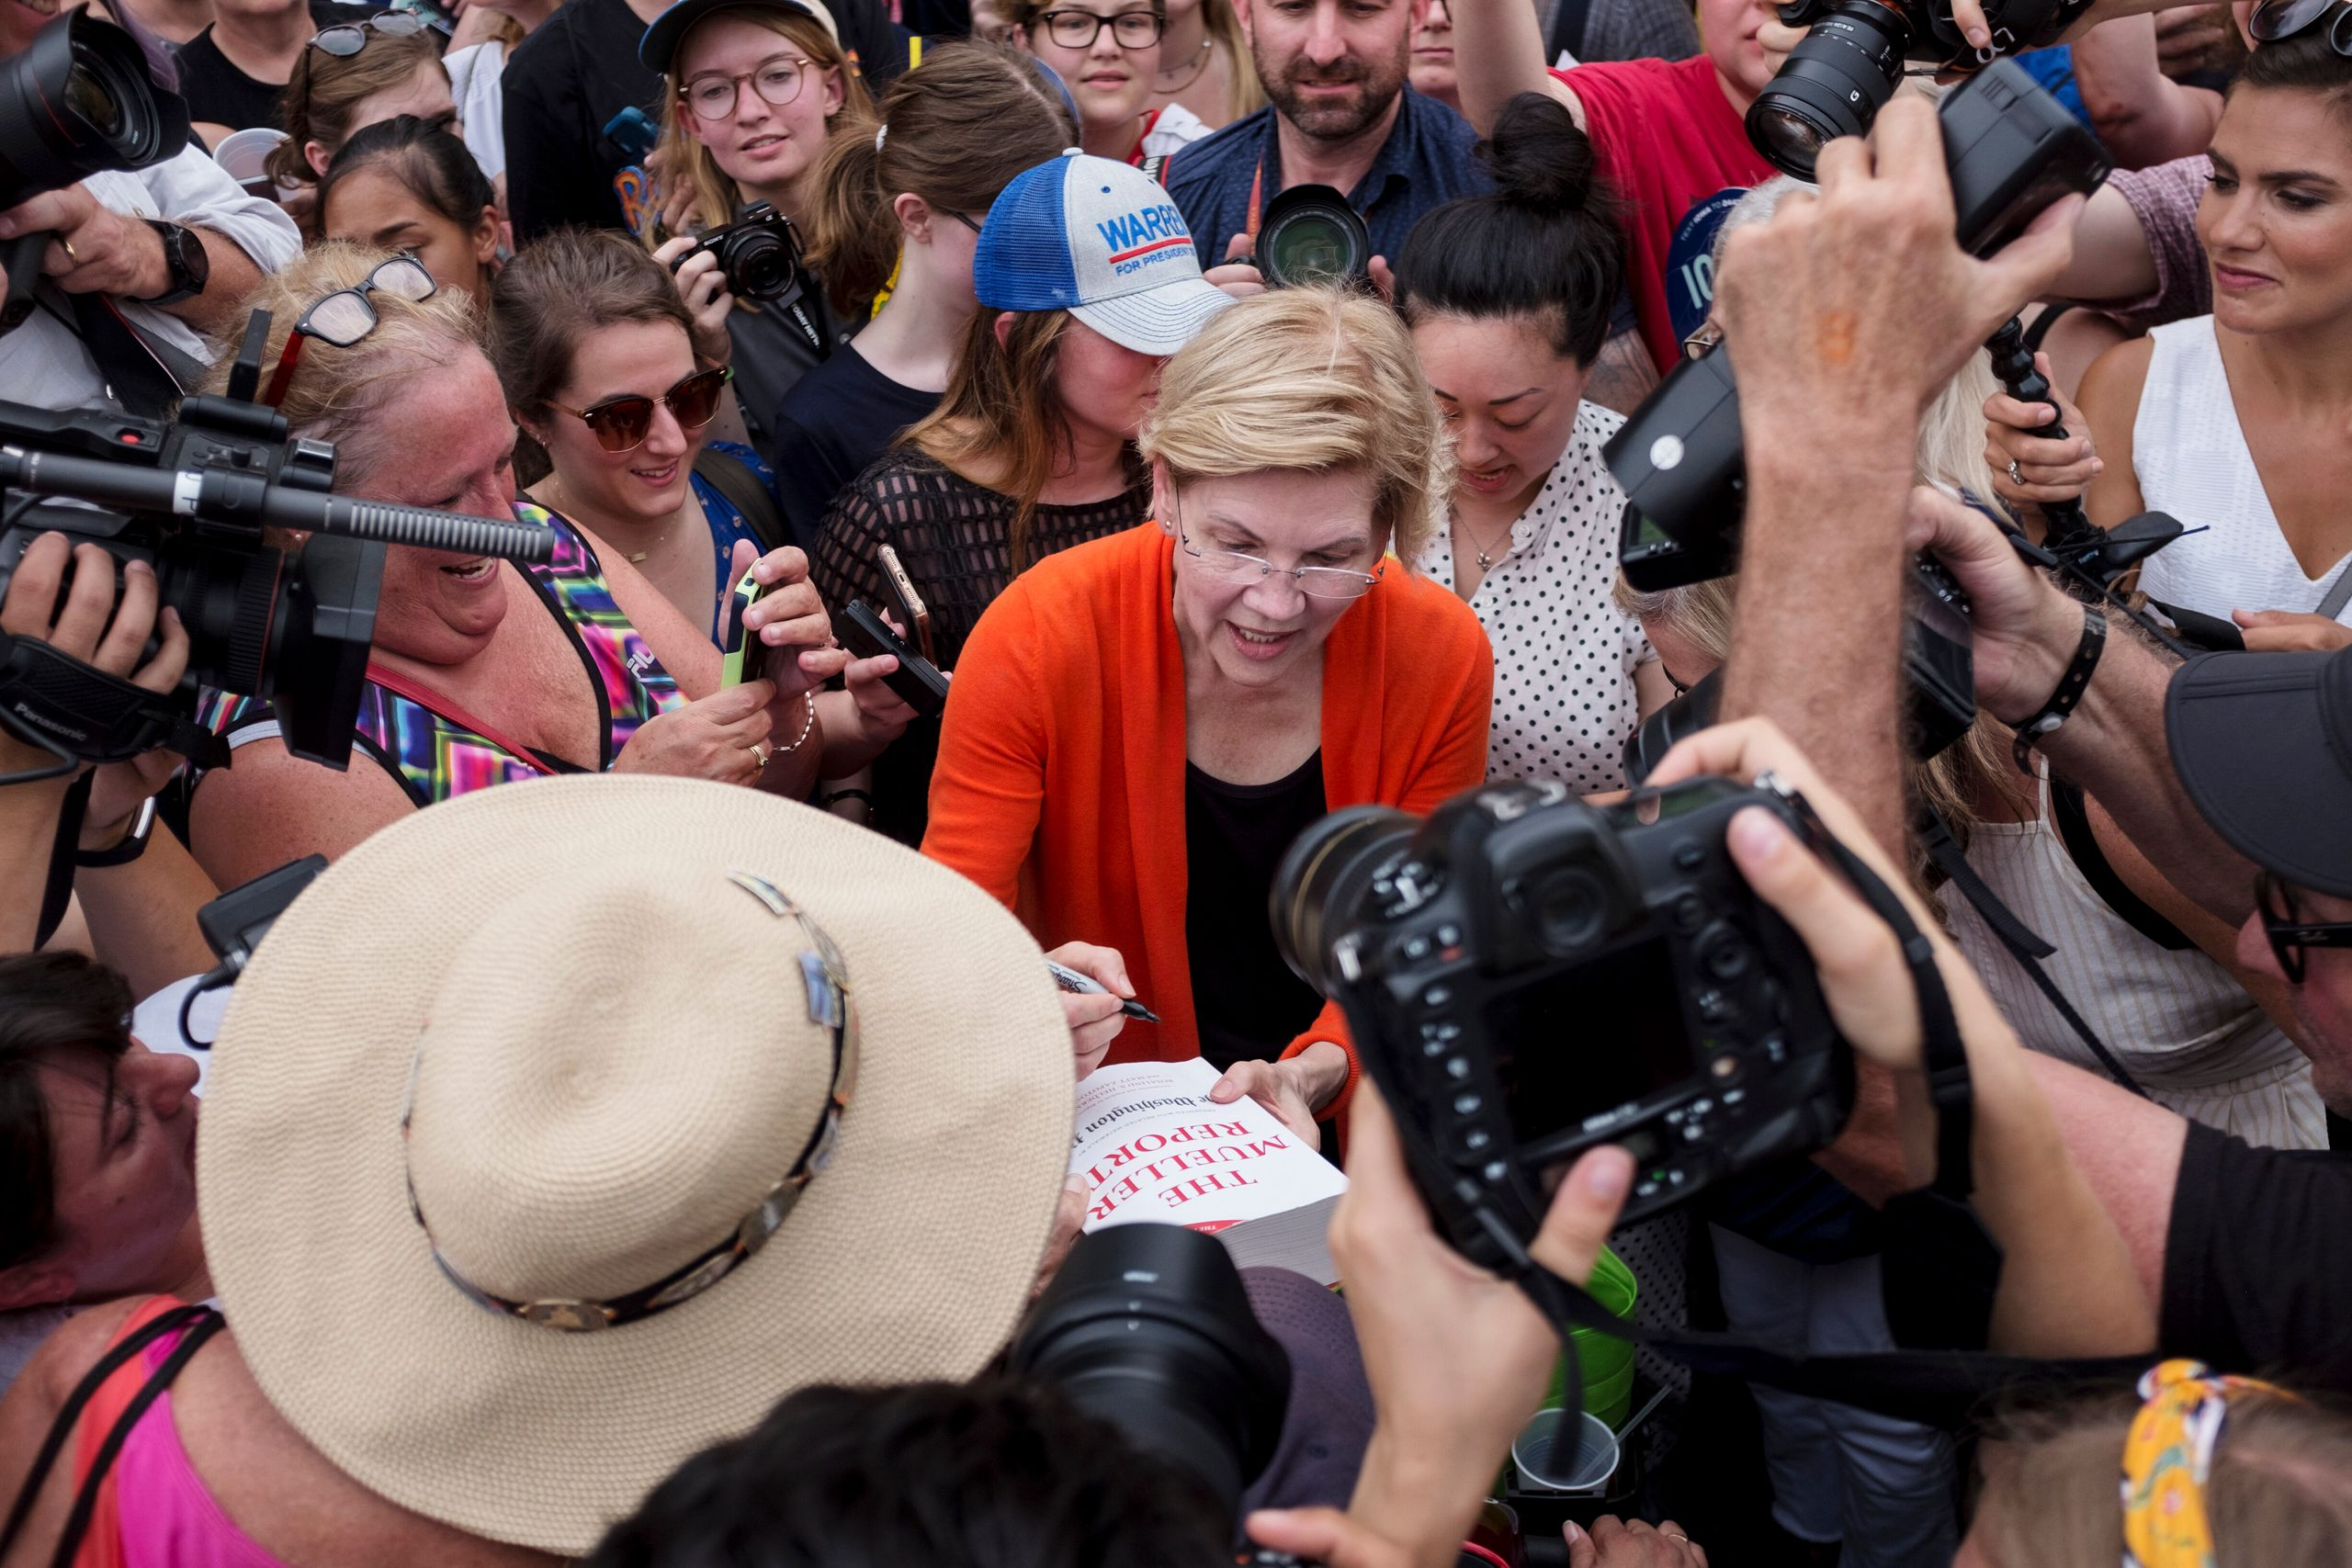 Sen. Elizabeth Warren (D-Mass.) signs a copy of the Mueller report for one of her supporters at the Iowa State Fair on Aug. 1